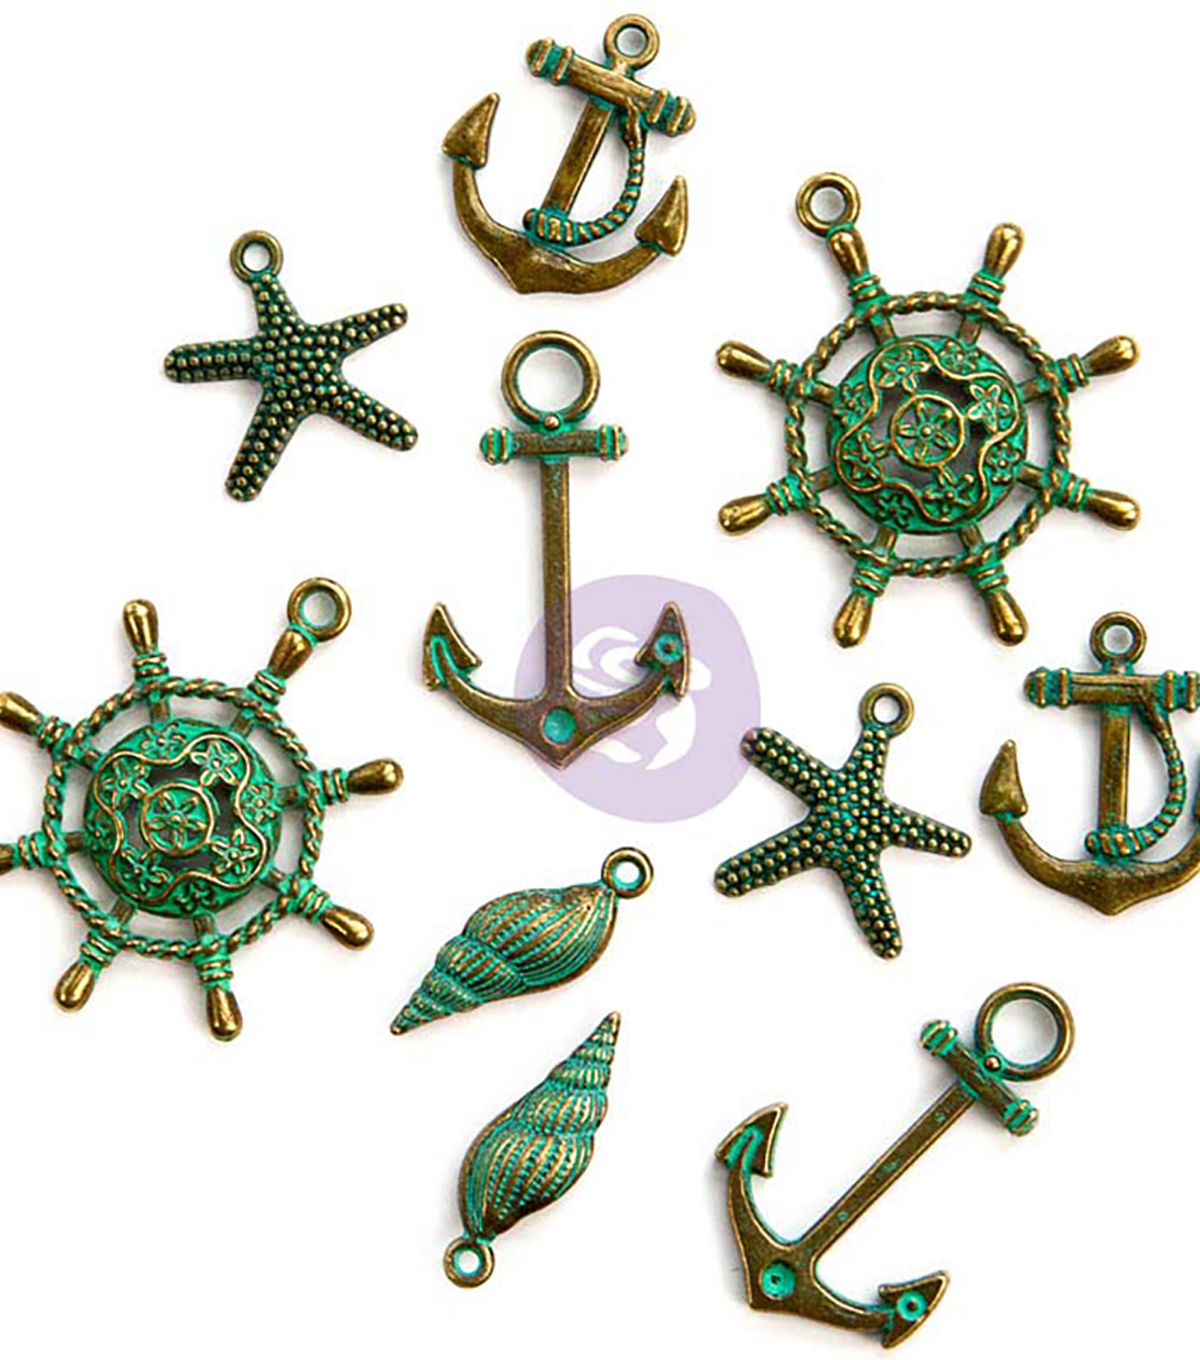 Prima Marketing 10 pk St. Tropez Metal Embellishments